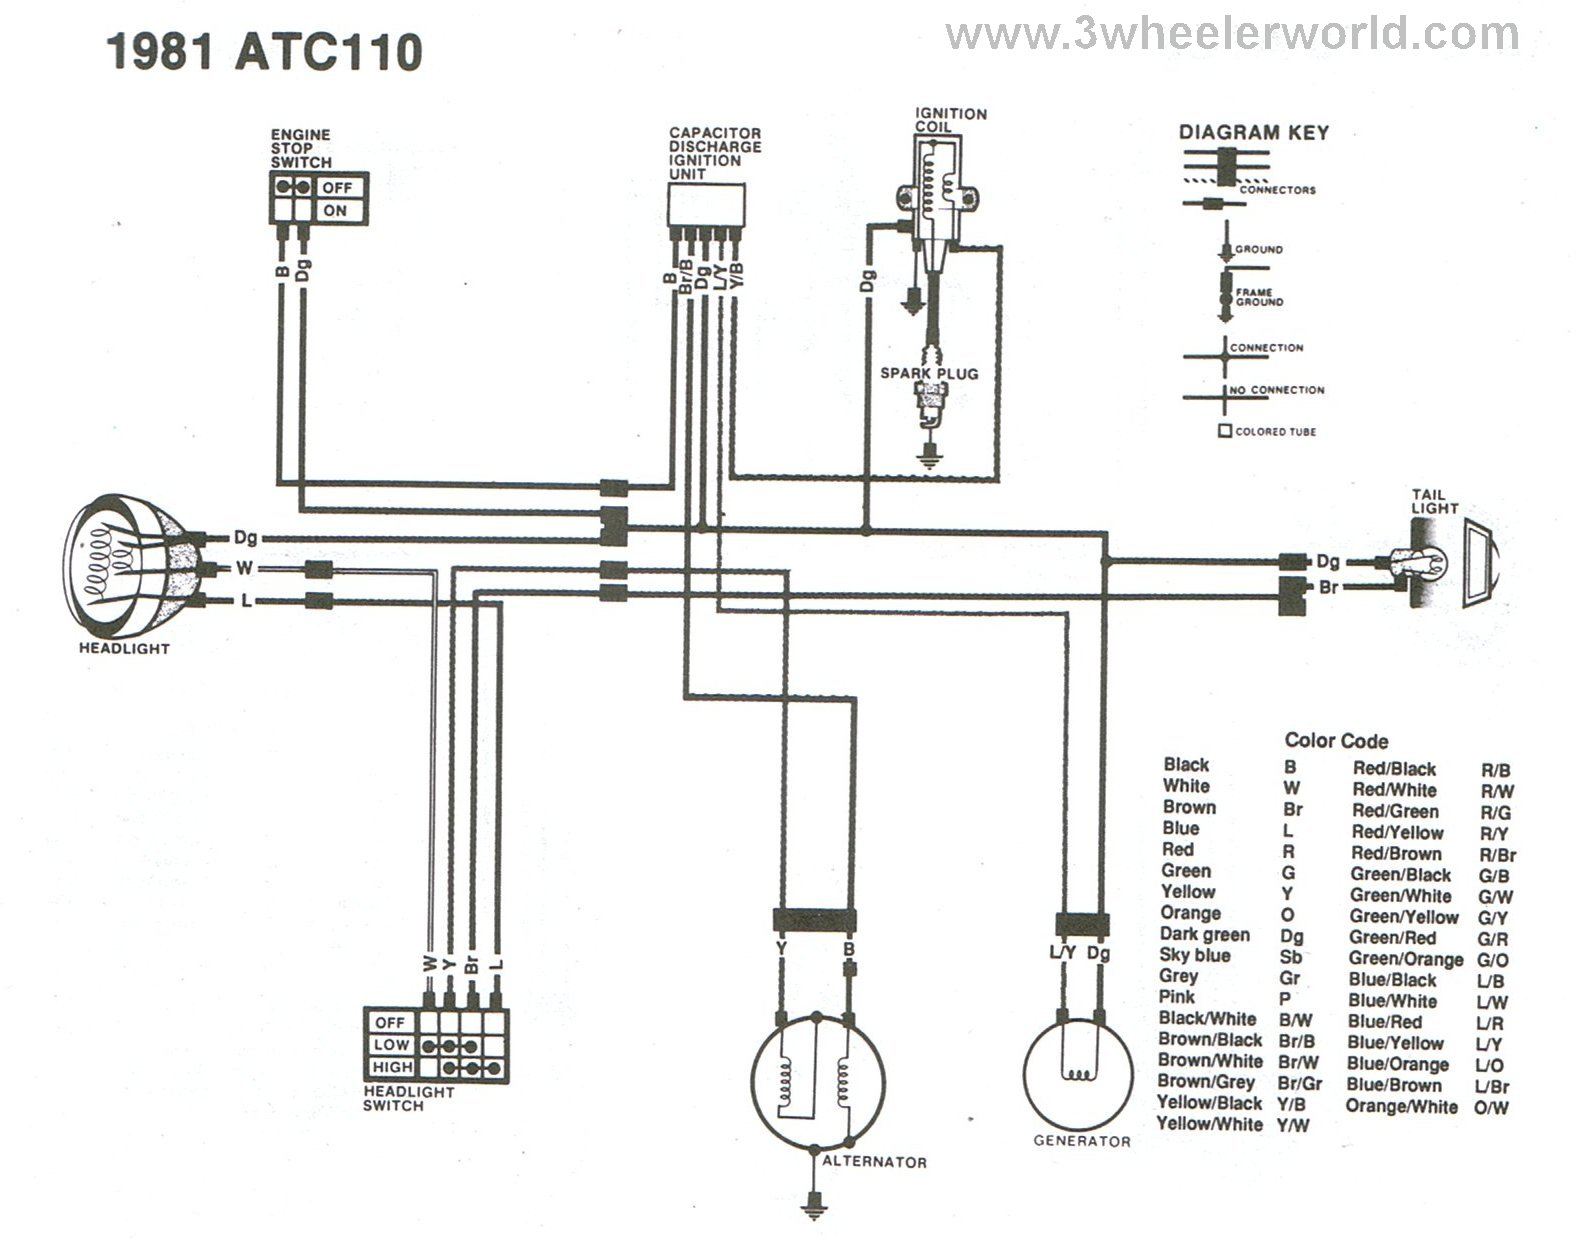 ATC110x81 3 wheeler world tech help honda wiring diagrams 1985 honda atc 110 wiring diagram at virtualis.co